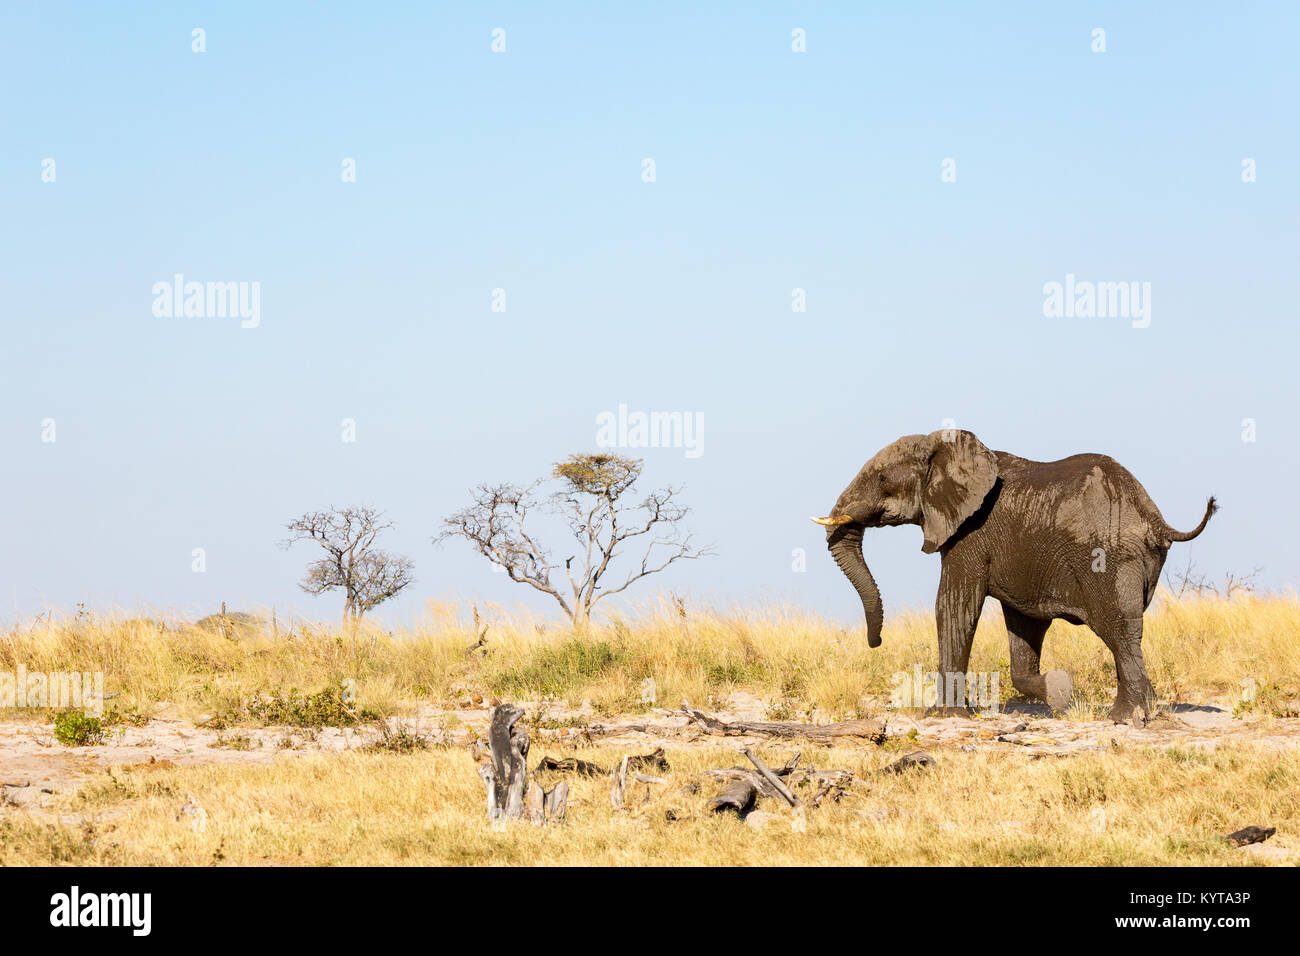 Lonely Elephant during a Safari in Botswana, Africa - Stock Image